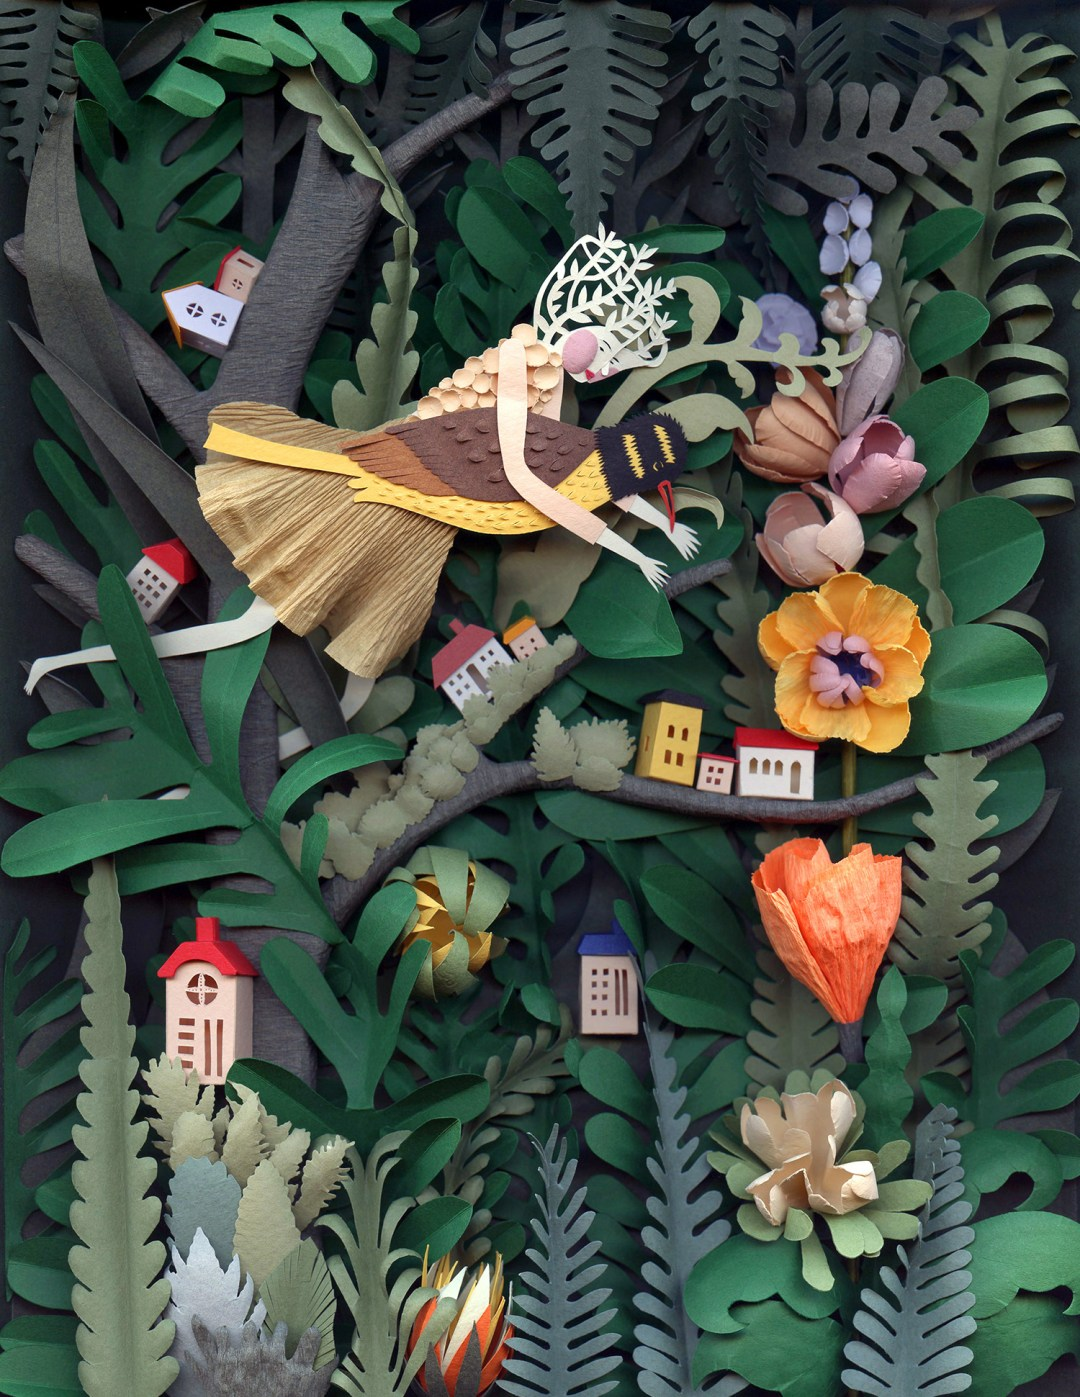 Paper sculpture commissioned by Cosmopolitan China.